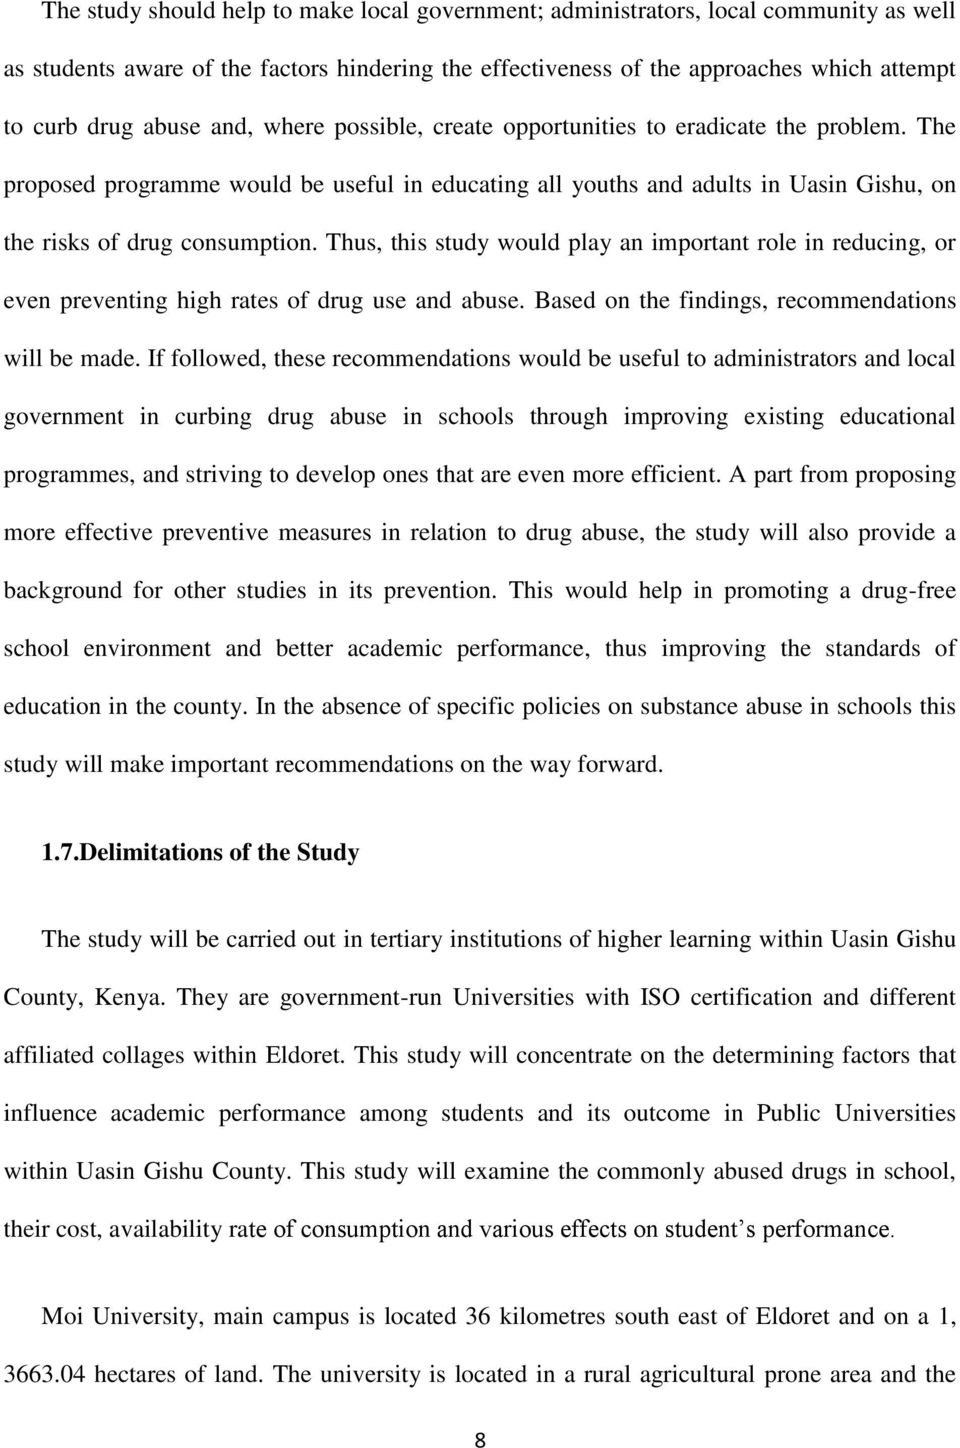 Environment Essays Drug Addiction In The Essay Photo Essay Captures Horrifying Reality Of Anti  Drug Photo Essay Captures Fsu Admission Essay also Essays Against School Uniforms Drugs Essays Drug Addiction In The Essay An Essay On Drugs A Thesis  Fight Club Essays